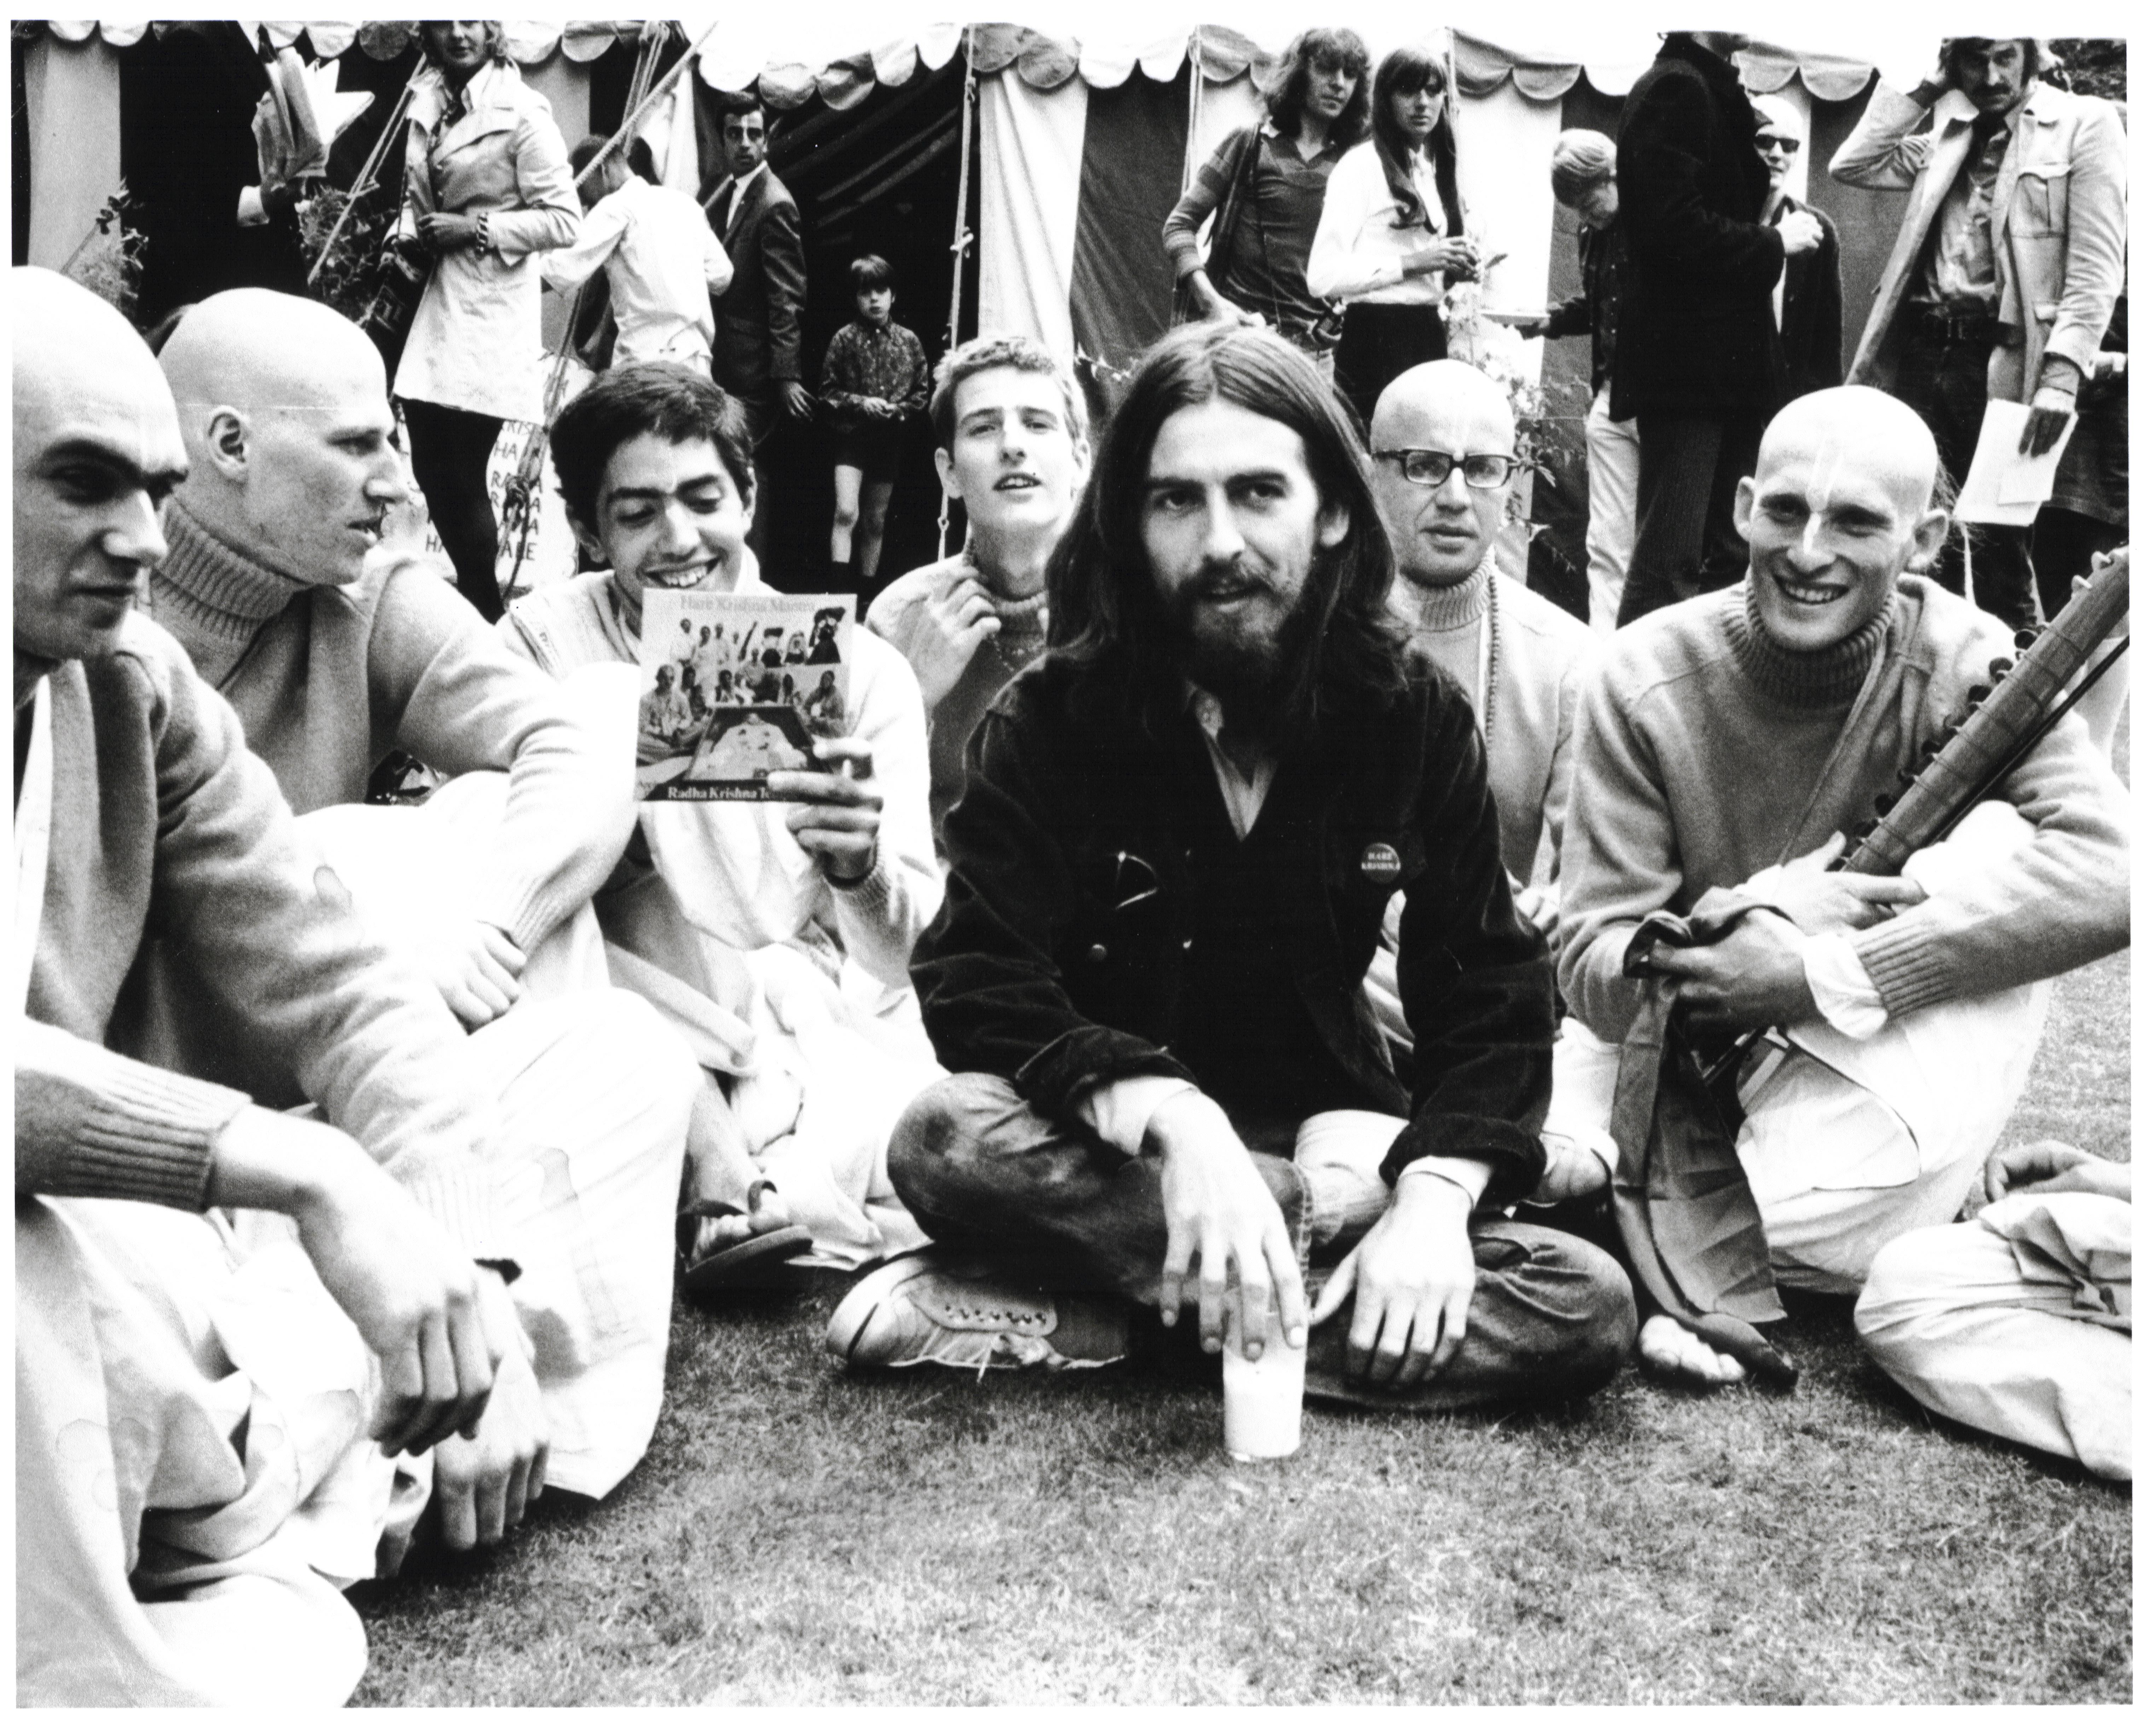 George Harrison Speaks About Living In The Material World